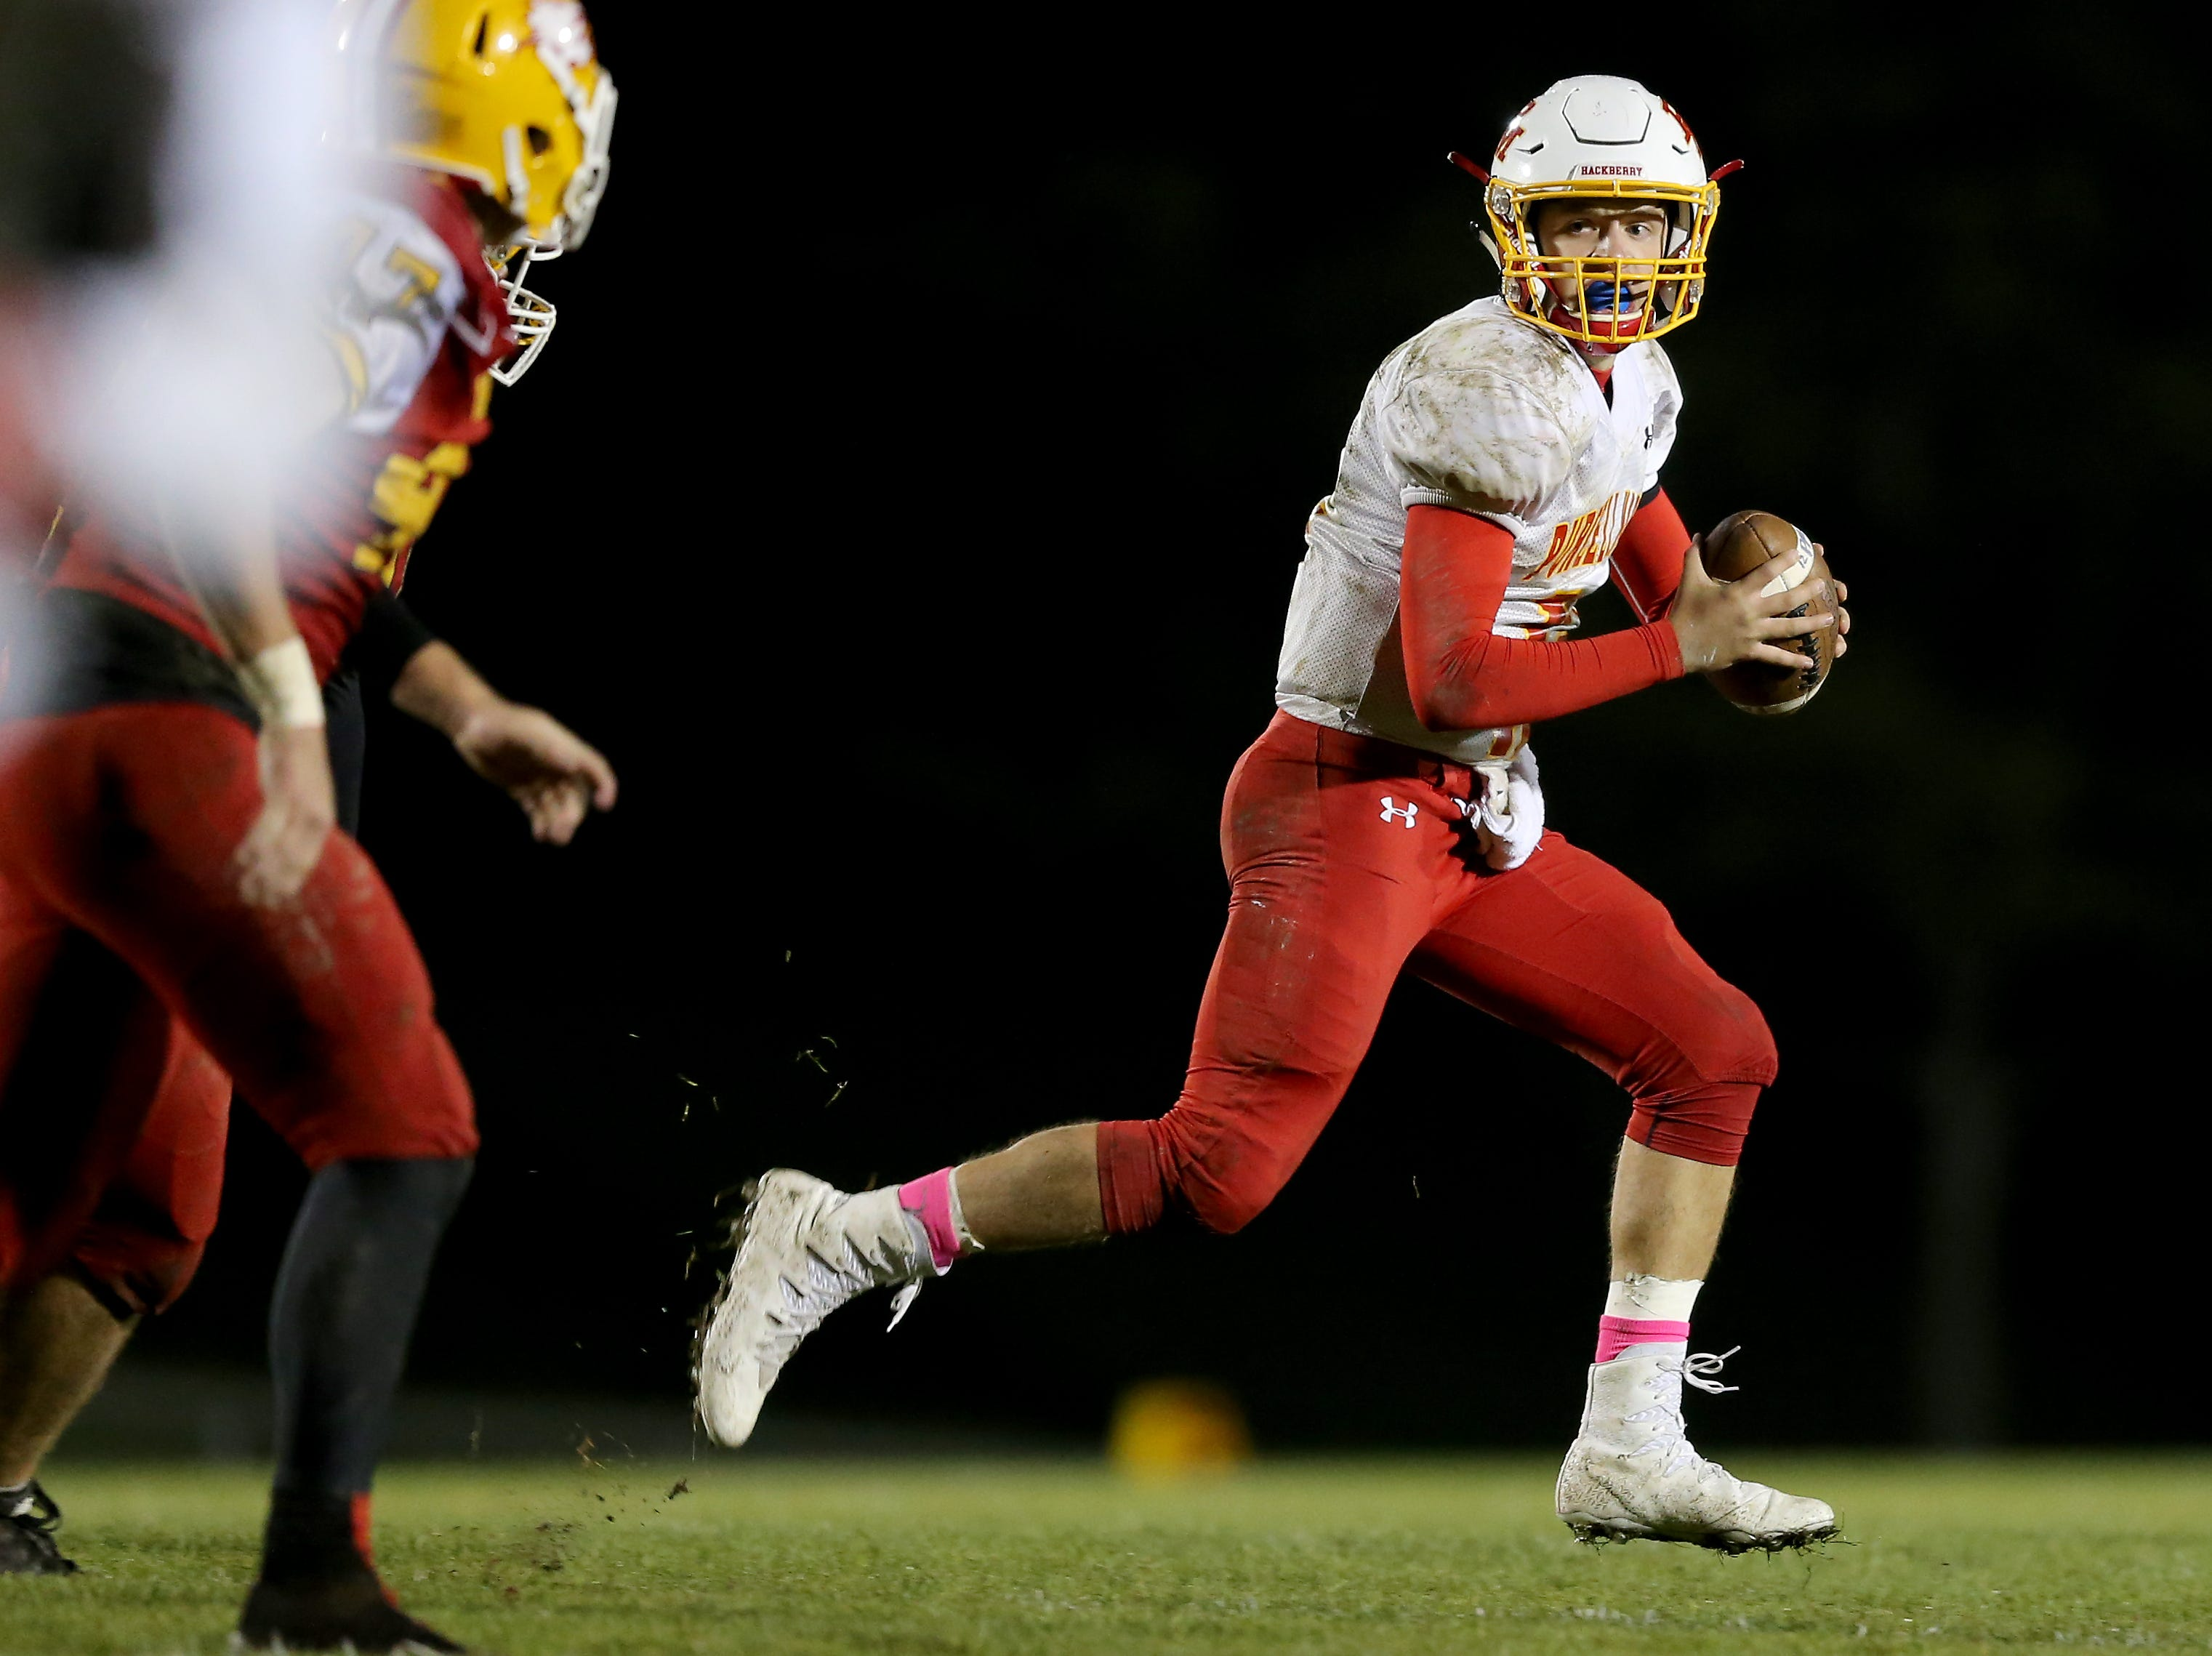 Purcell Marian quarterback Zach Hoover (12) rolls out of the pocket in the fourth quarter during a high school football game between Purcell Marian and Bishop Fenwick, Friday, Oct. 12, 2018, at Bishop Fenwick High School in Middletown, Ohio.